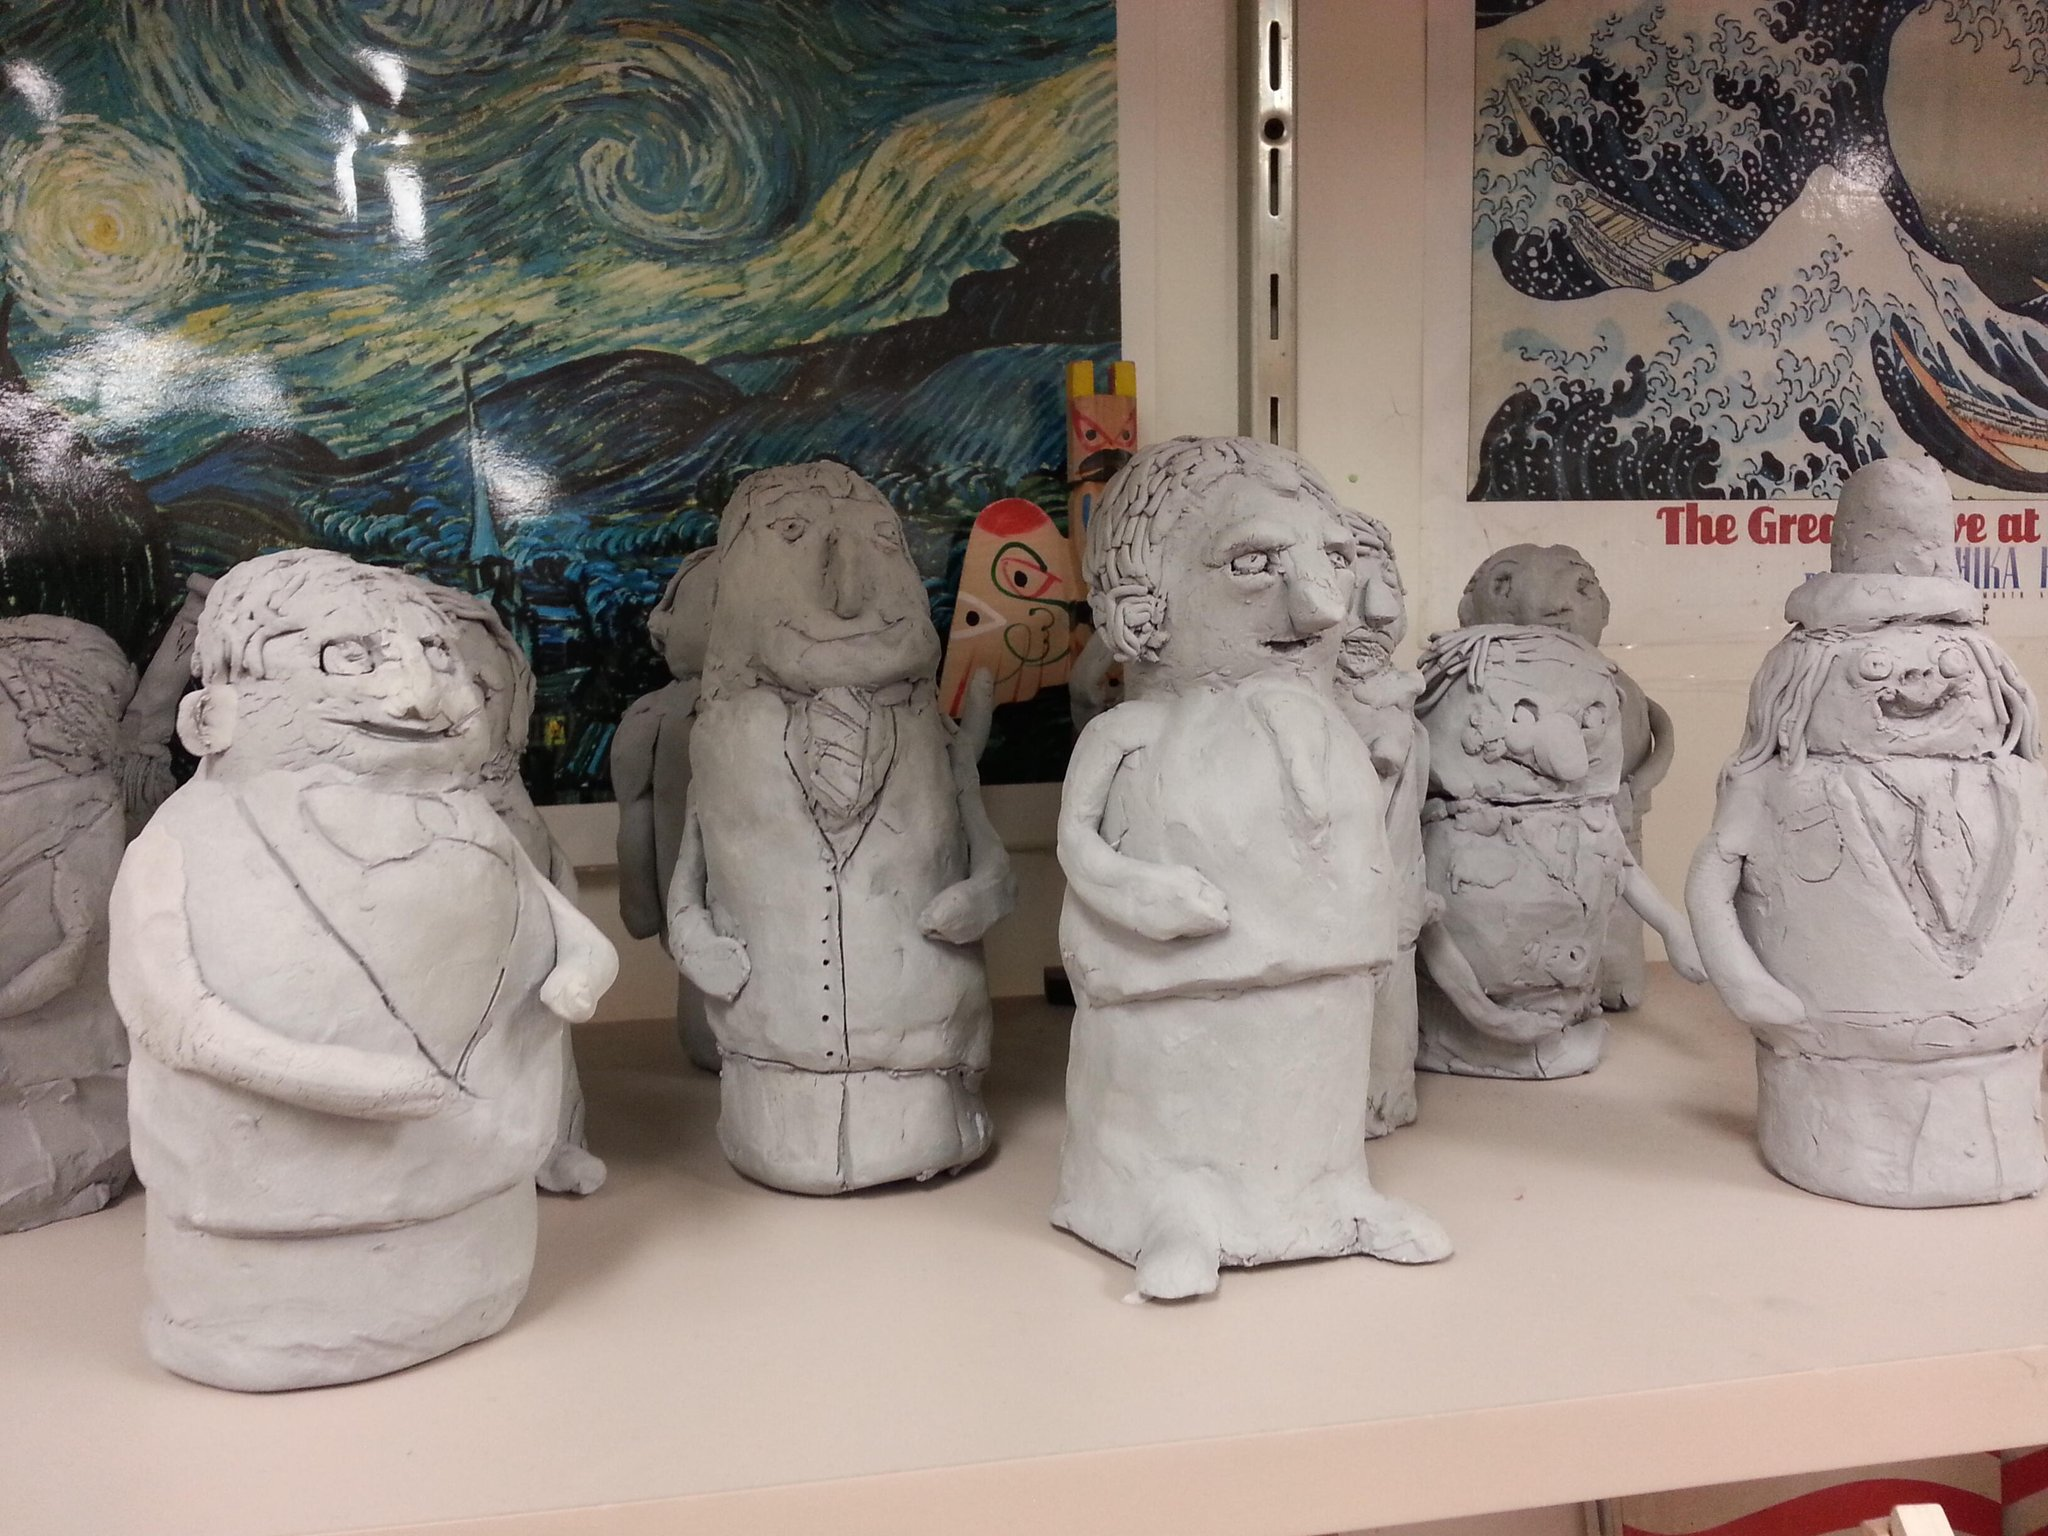 Twitter / punctiliar: In the art room at #teamholmes ...